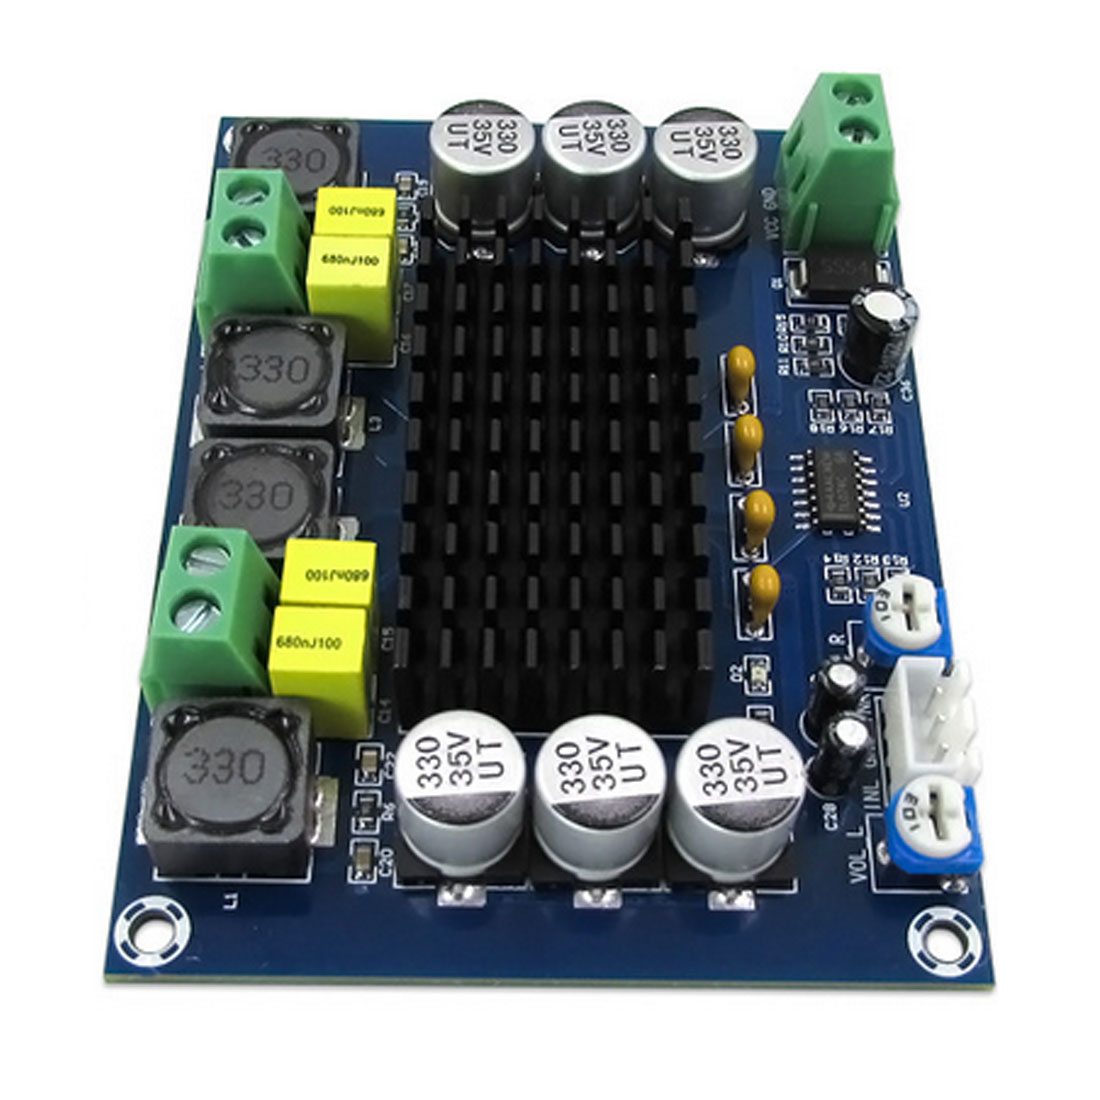 Marsnaska Brand New Top Quality DC 12V 24V <font><b>120W</b></font>*2 TPA3116 D2 Dual Channel Digital Power Audio <font><b>Amplifier</b></font> Board image